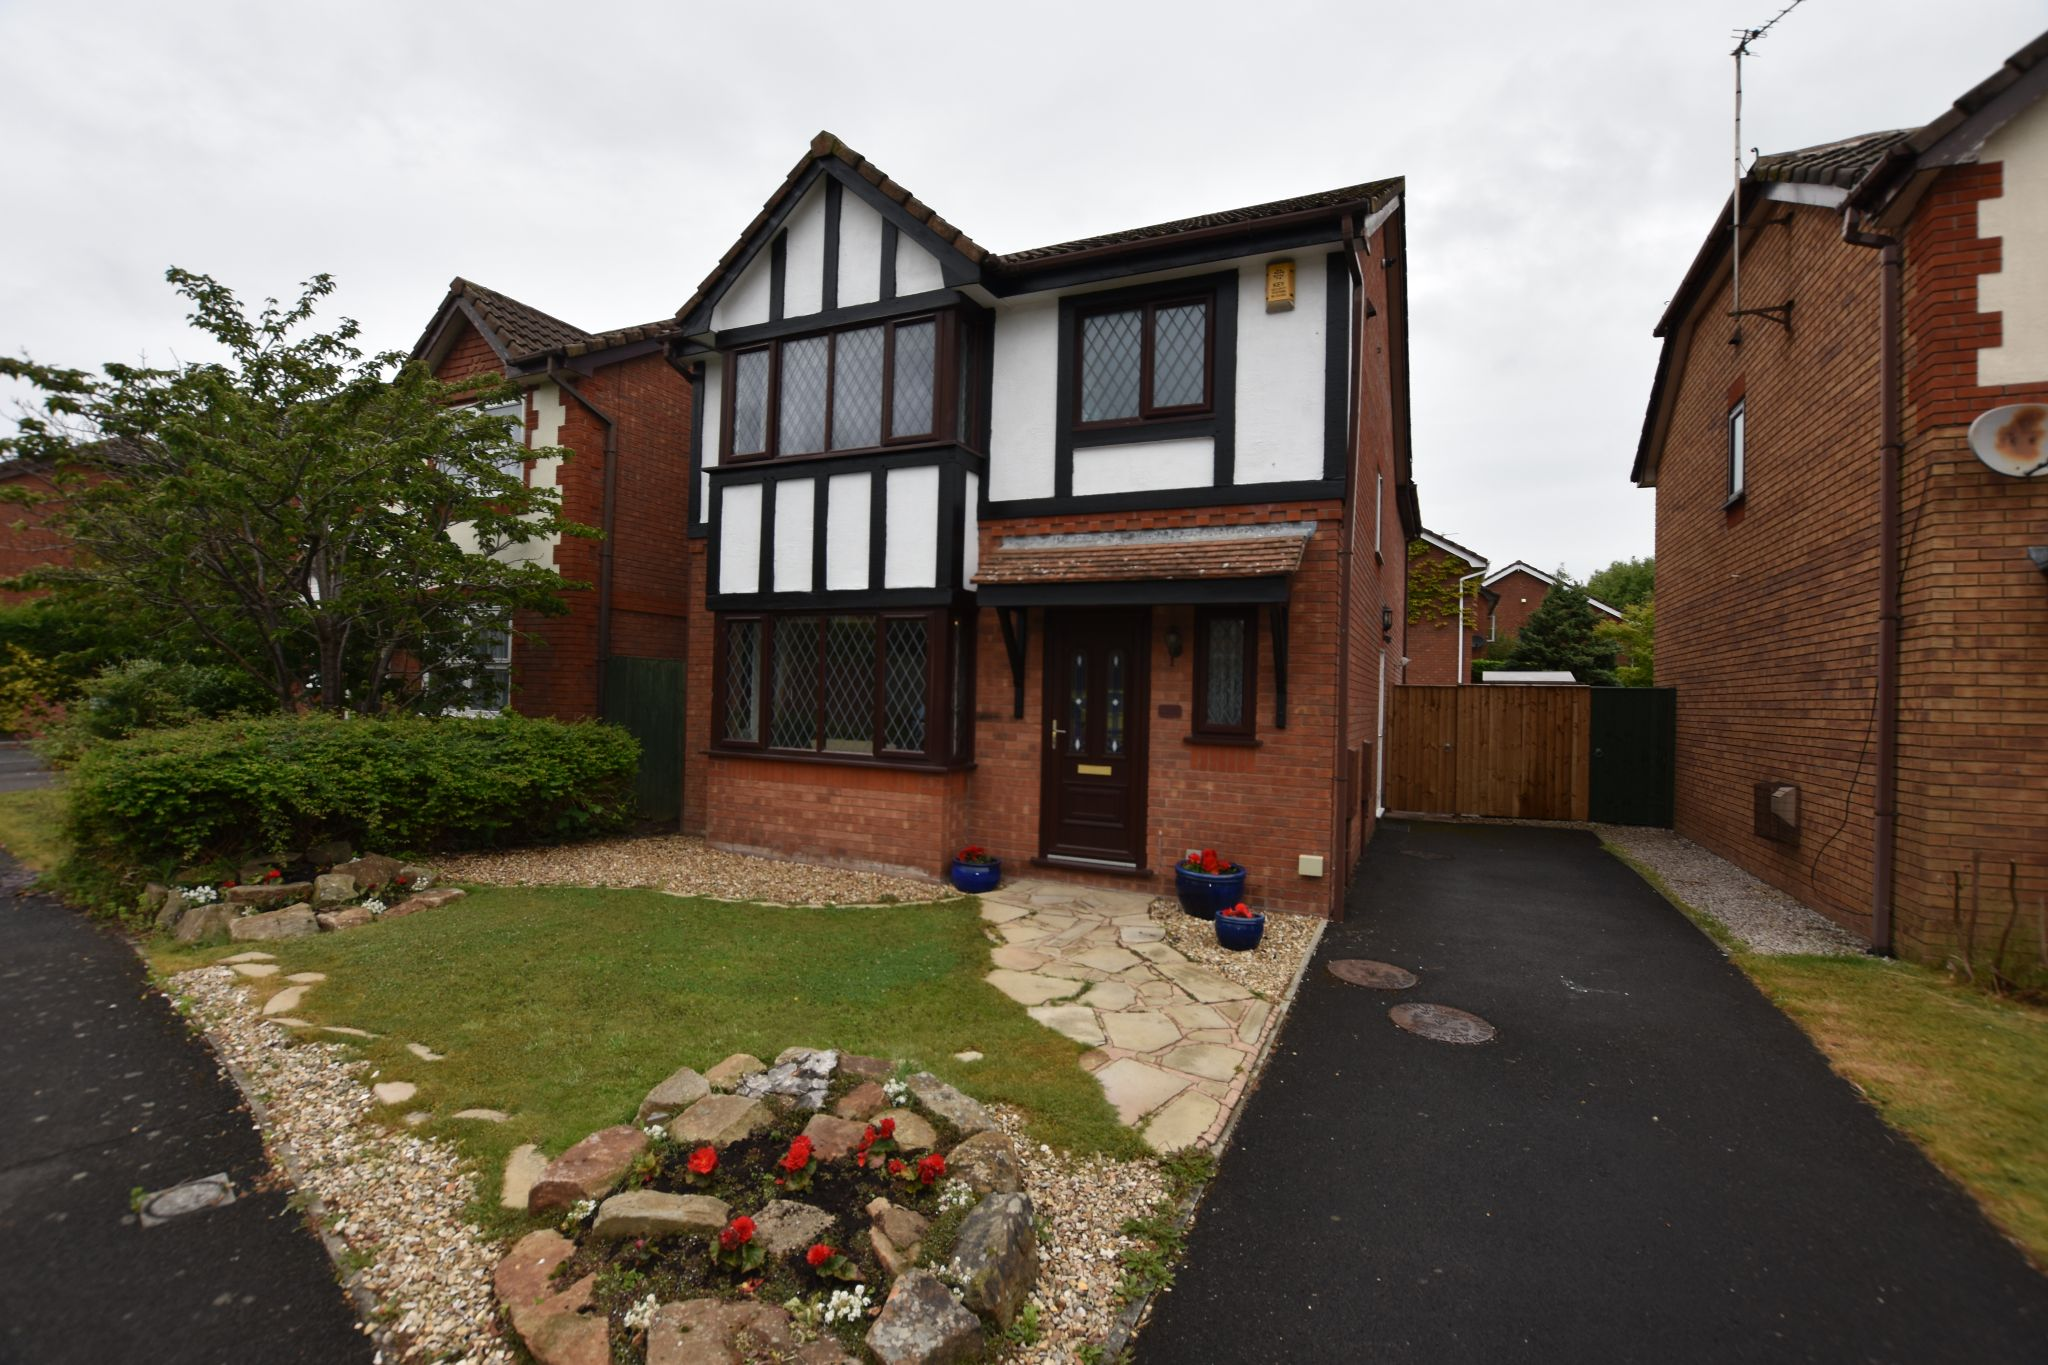 3 bedroom detached house Sold STC in Preston - Hastings Ave